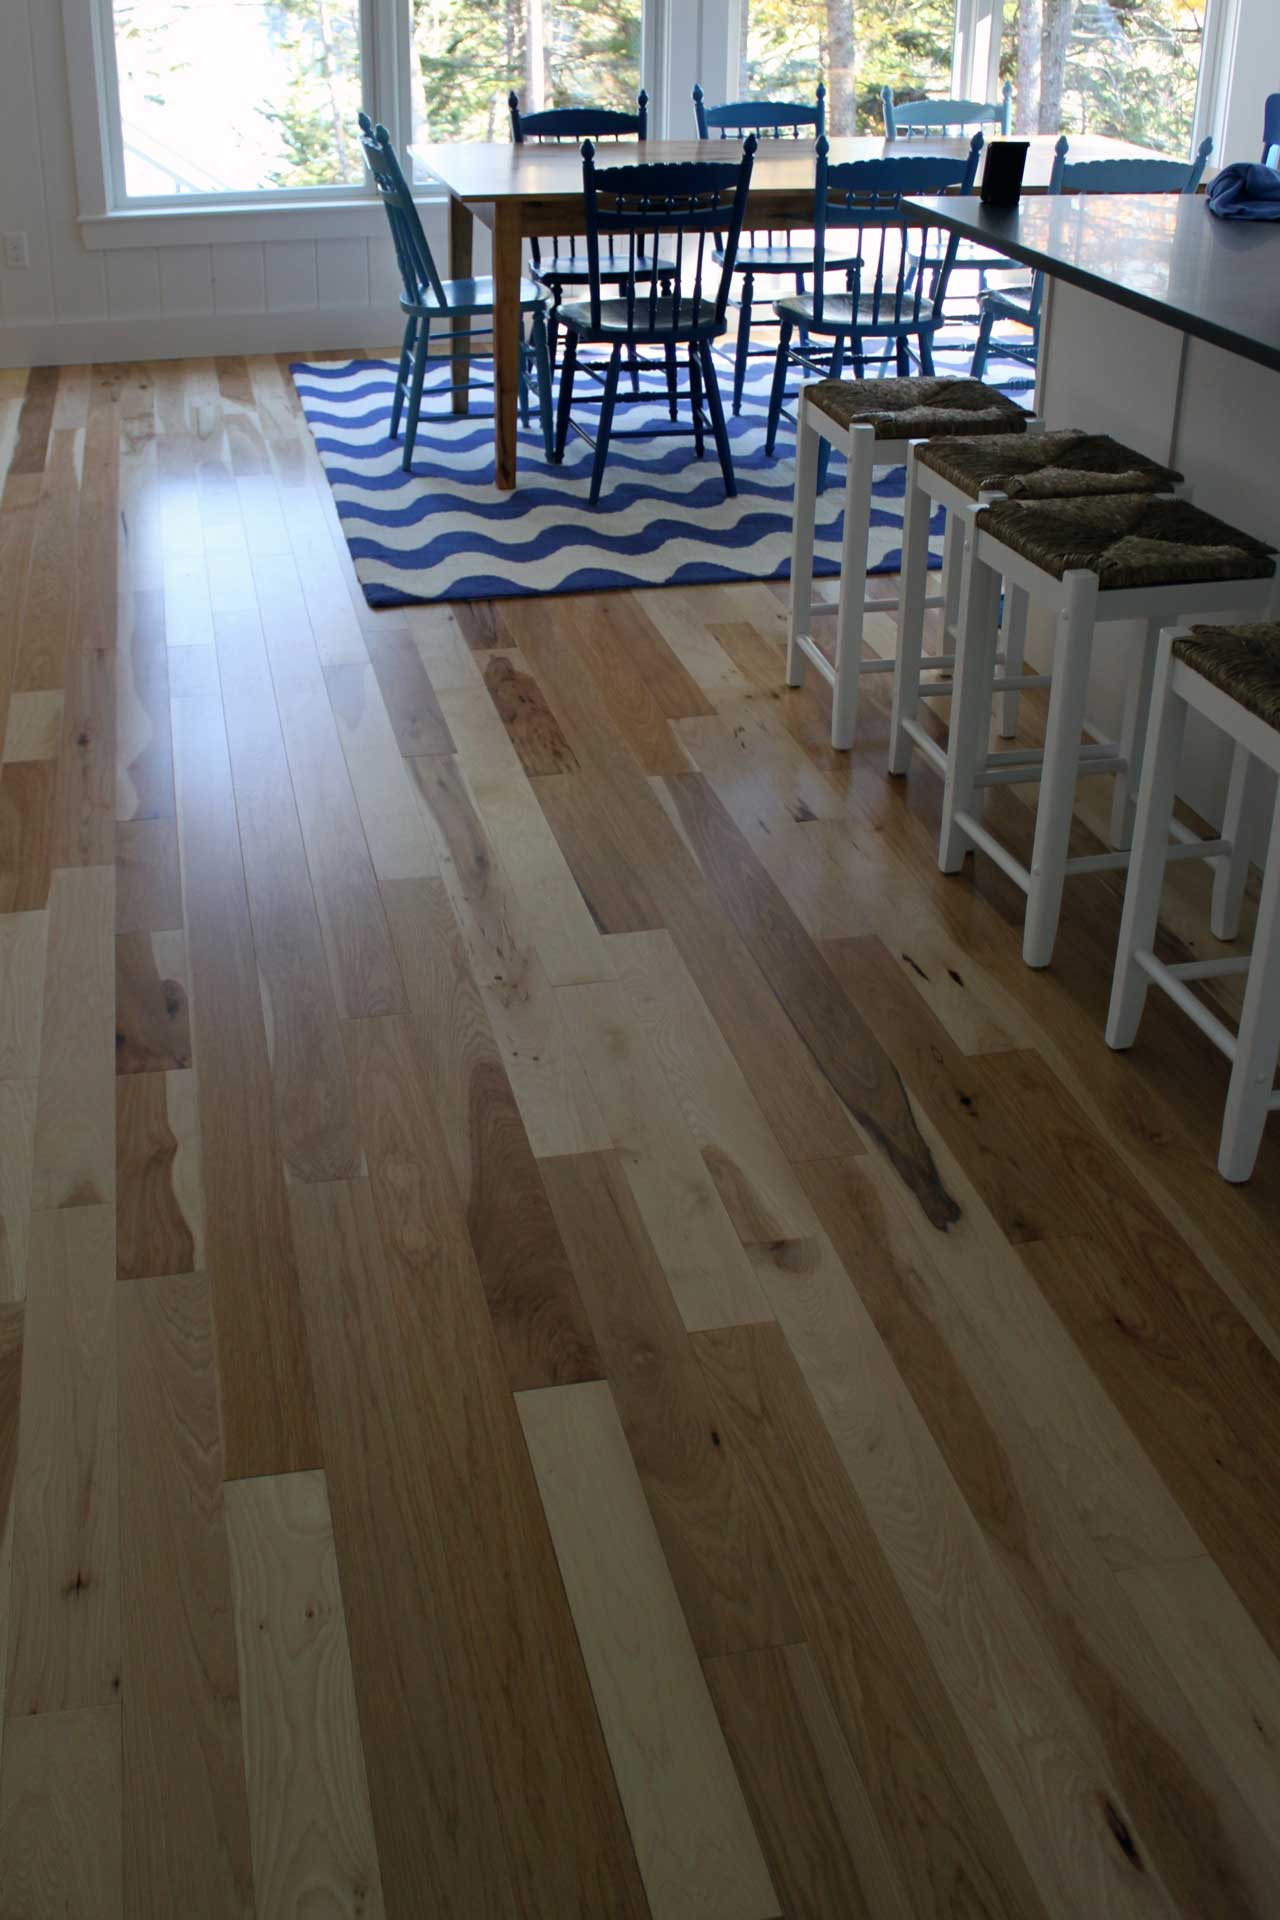 Hardwood-Floors-Hickory-floors-3-Massachusetts